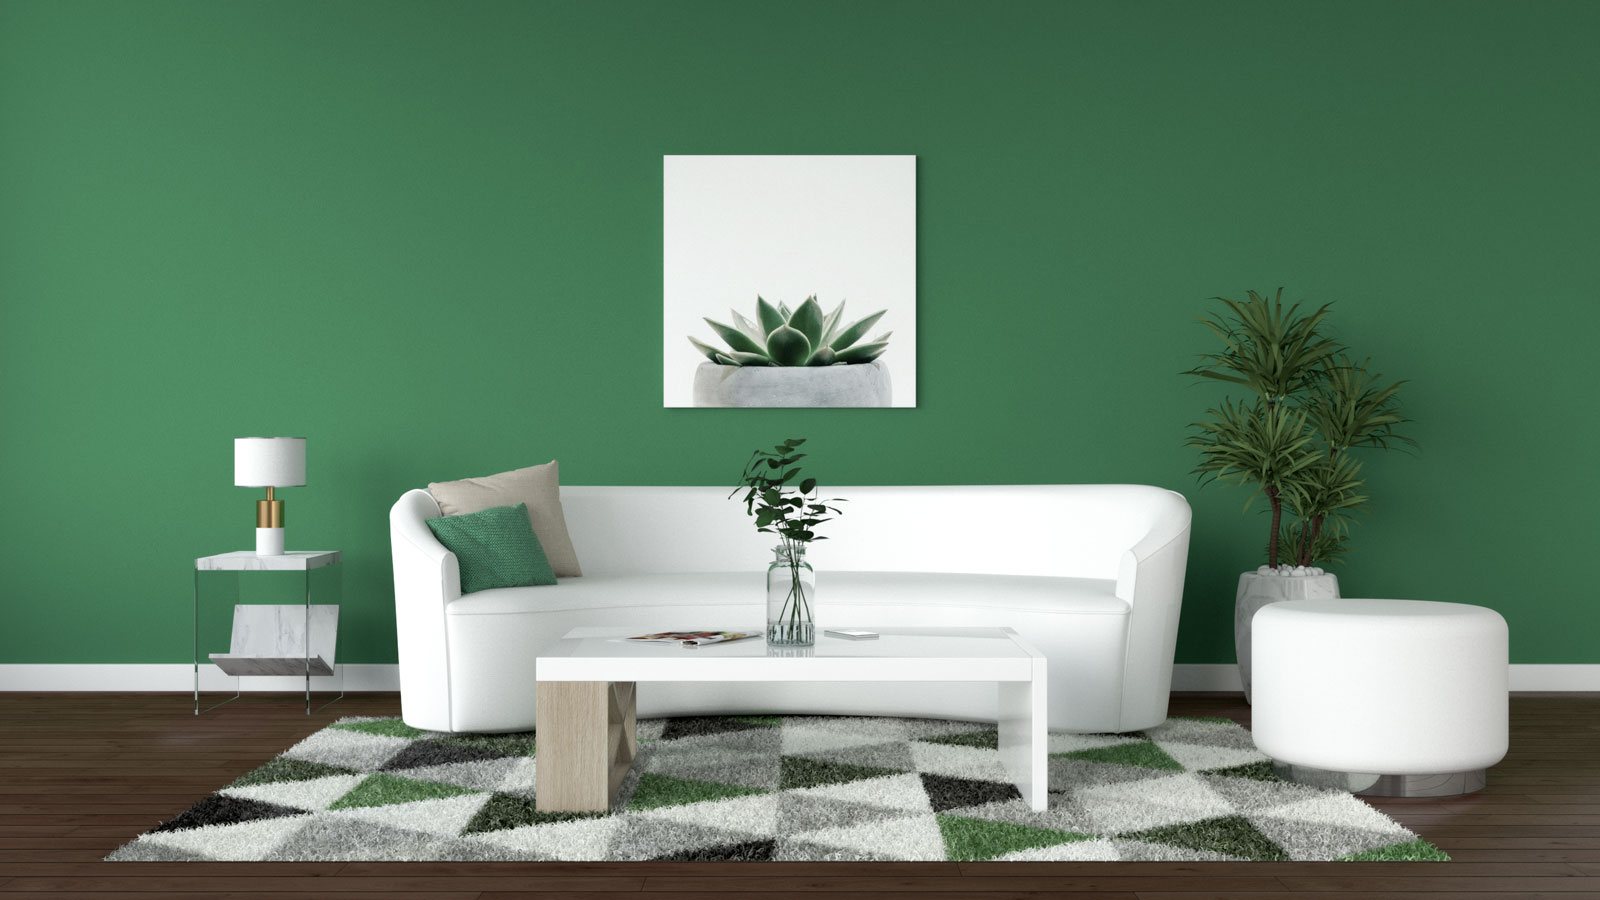 Emerald green wall with white furniture